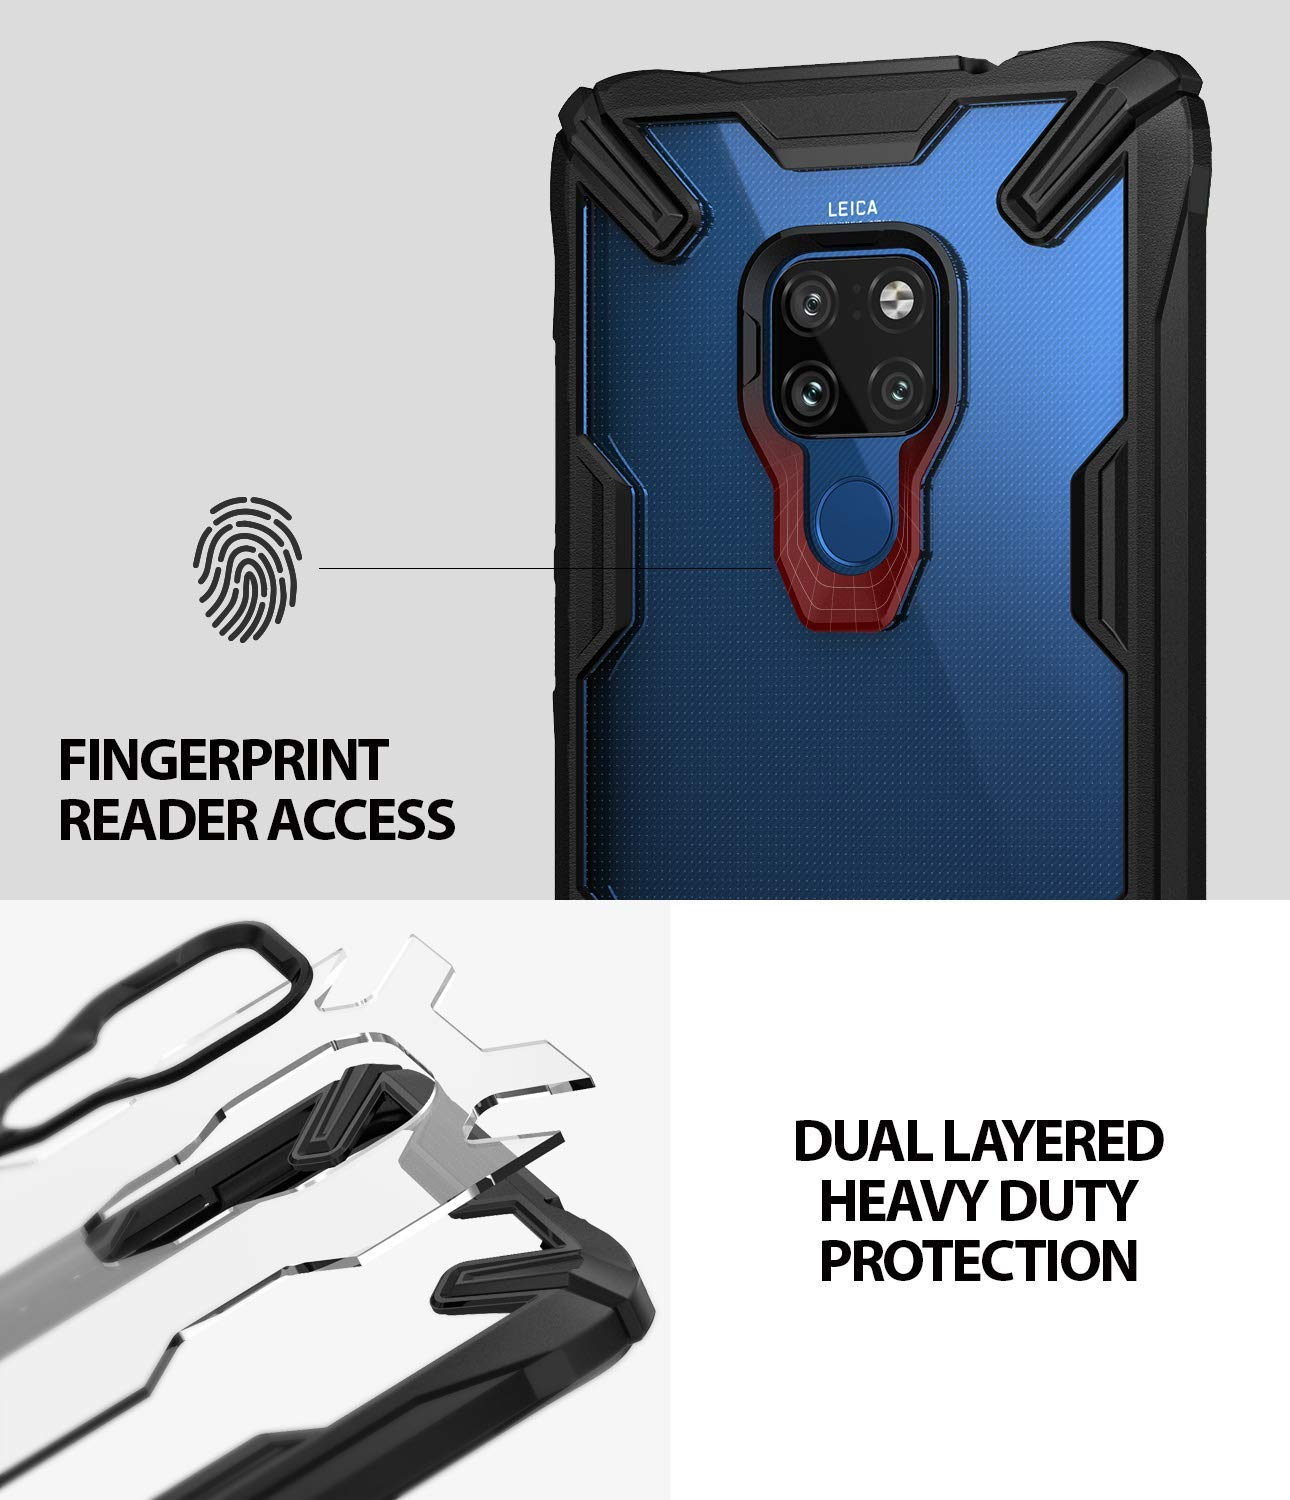 fingerprint reader access / dual layered heavy duty protection